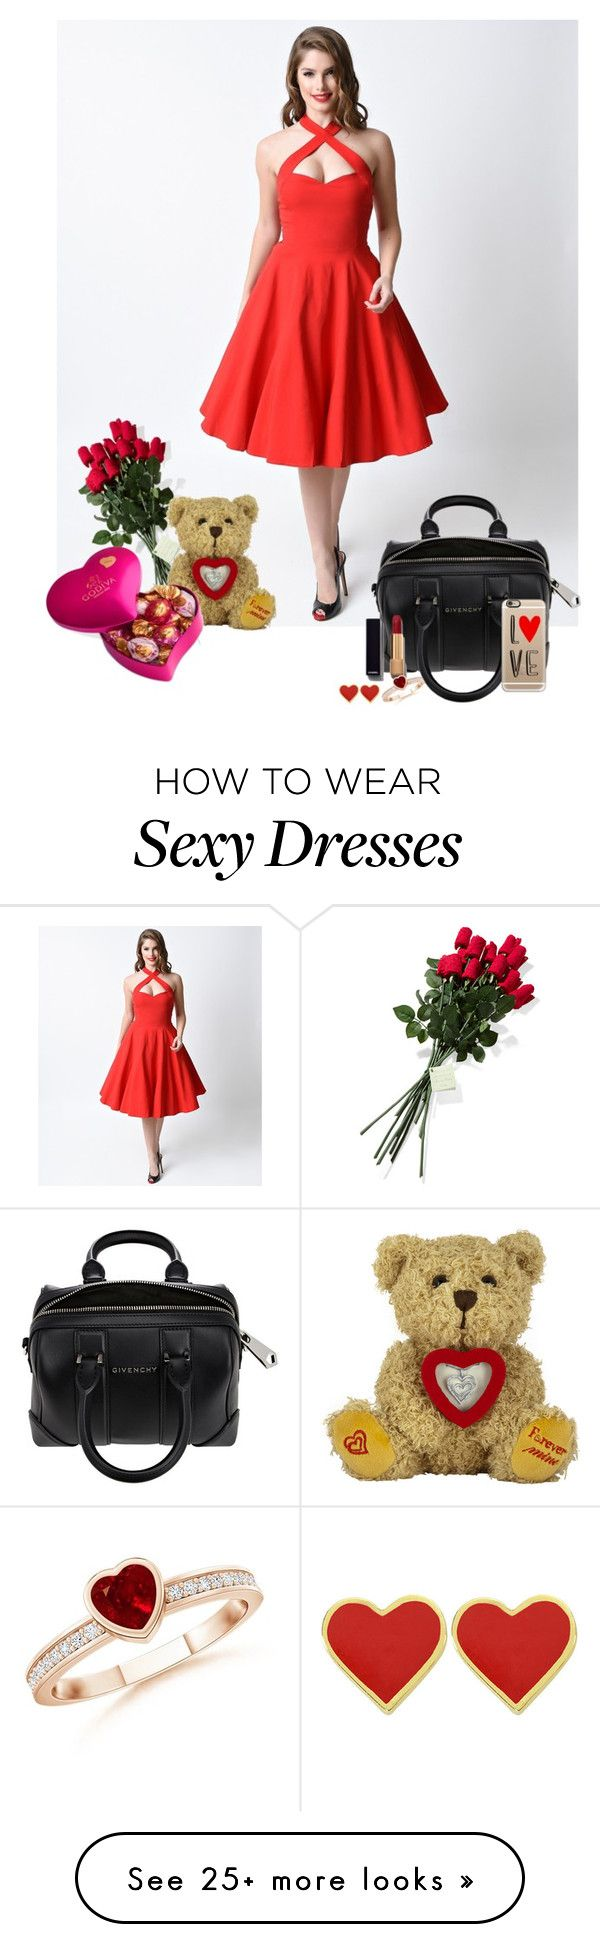 """""""A Sexy Valentine's Day Dinner"""" by storyofmylife-1d on Polyvore featuring Collectif, Givenchy, Chanel, Casetify, Hanky Panky, Godiva, women's clothing, women, female and woman"""